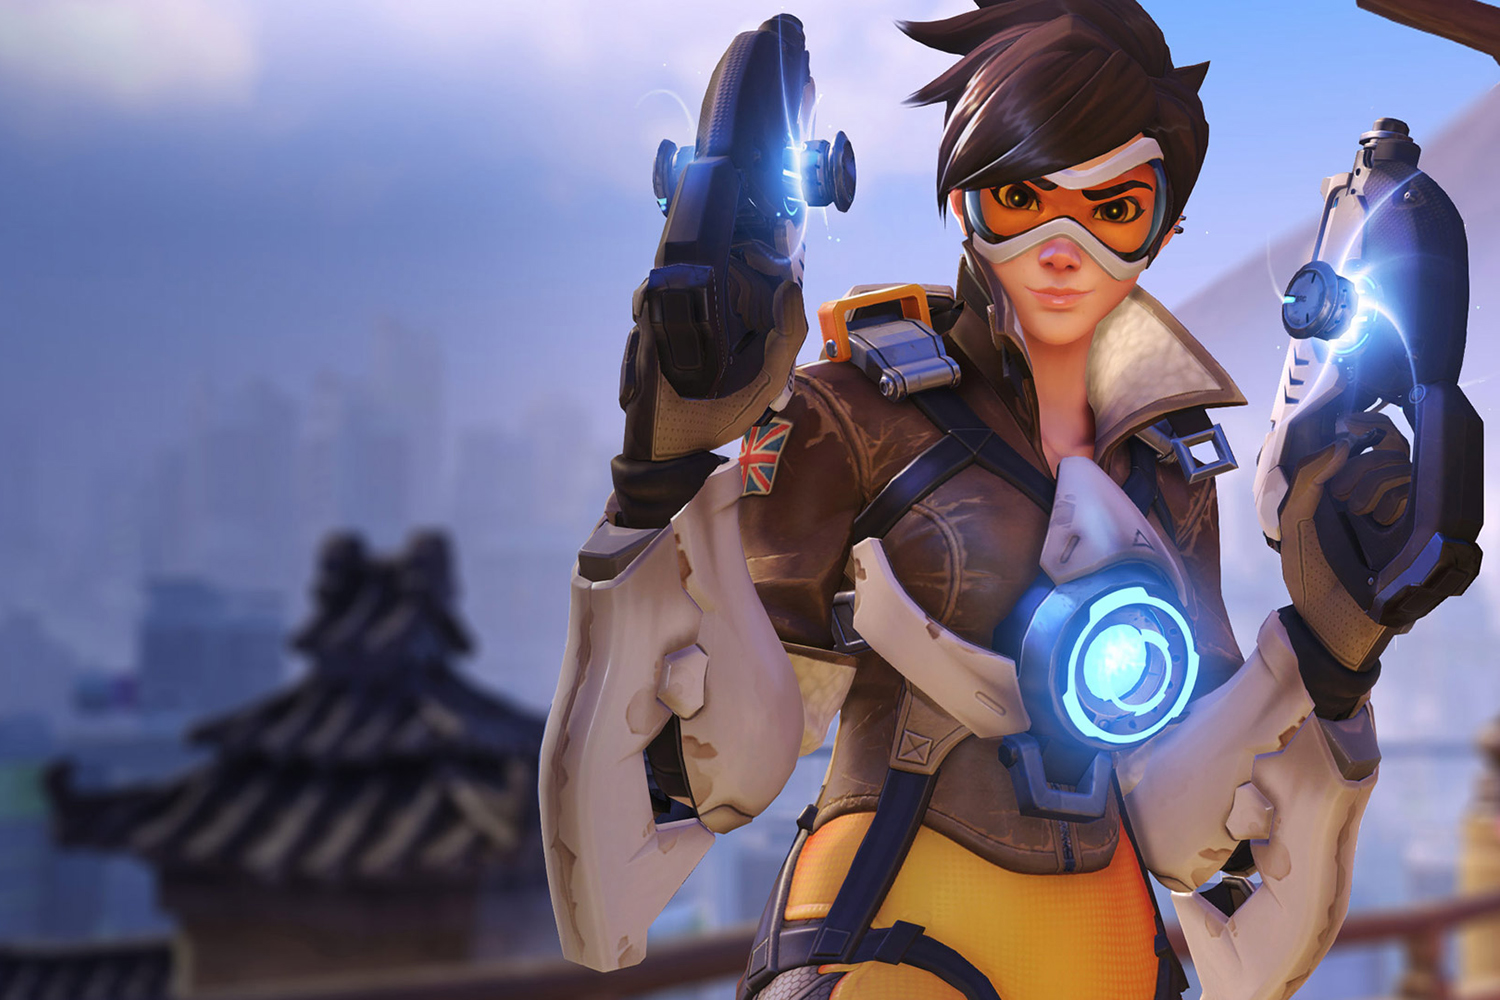 There Is An Overwatch Free Weekend On All Platforms Later This Month